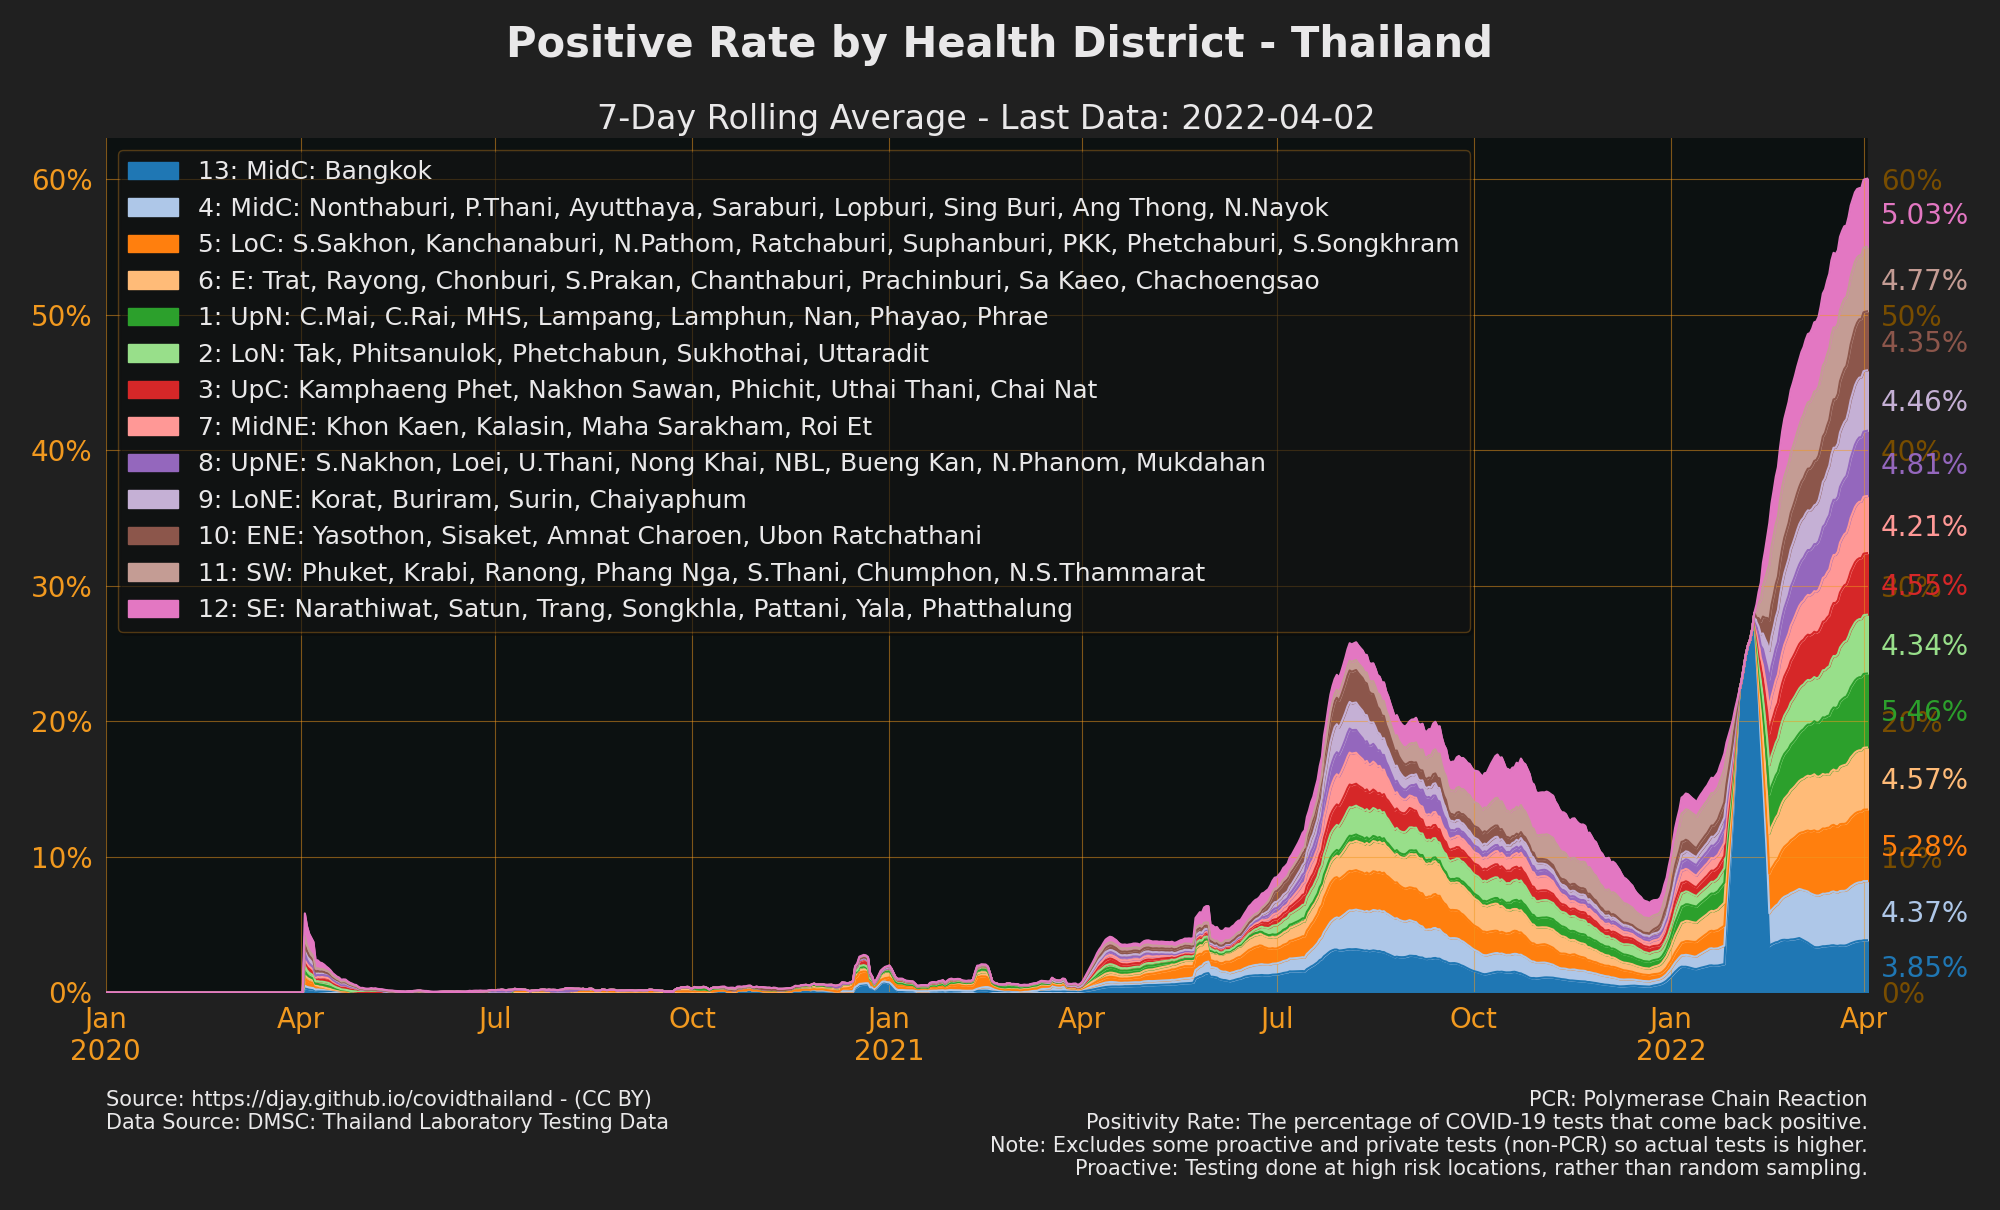 Positive Rate by Health District in overall positive rate (ex. some proactive tests)